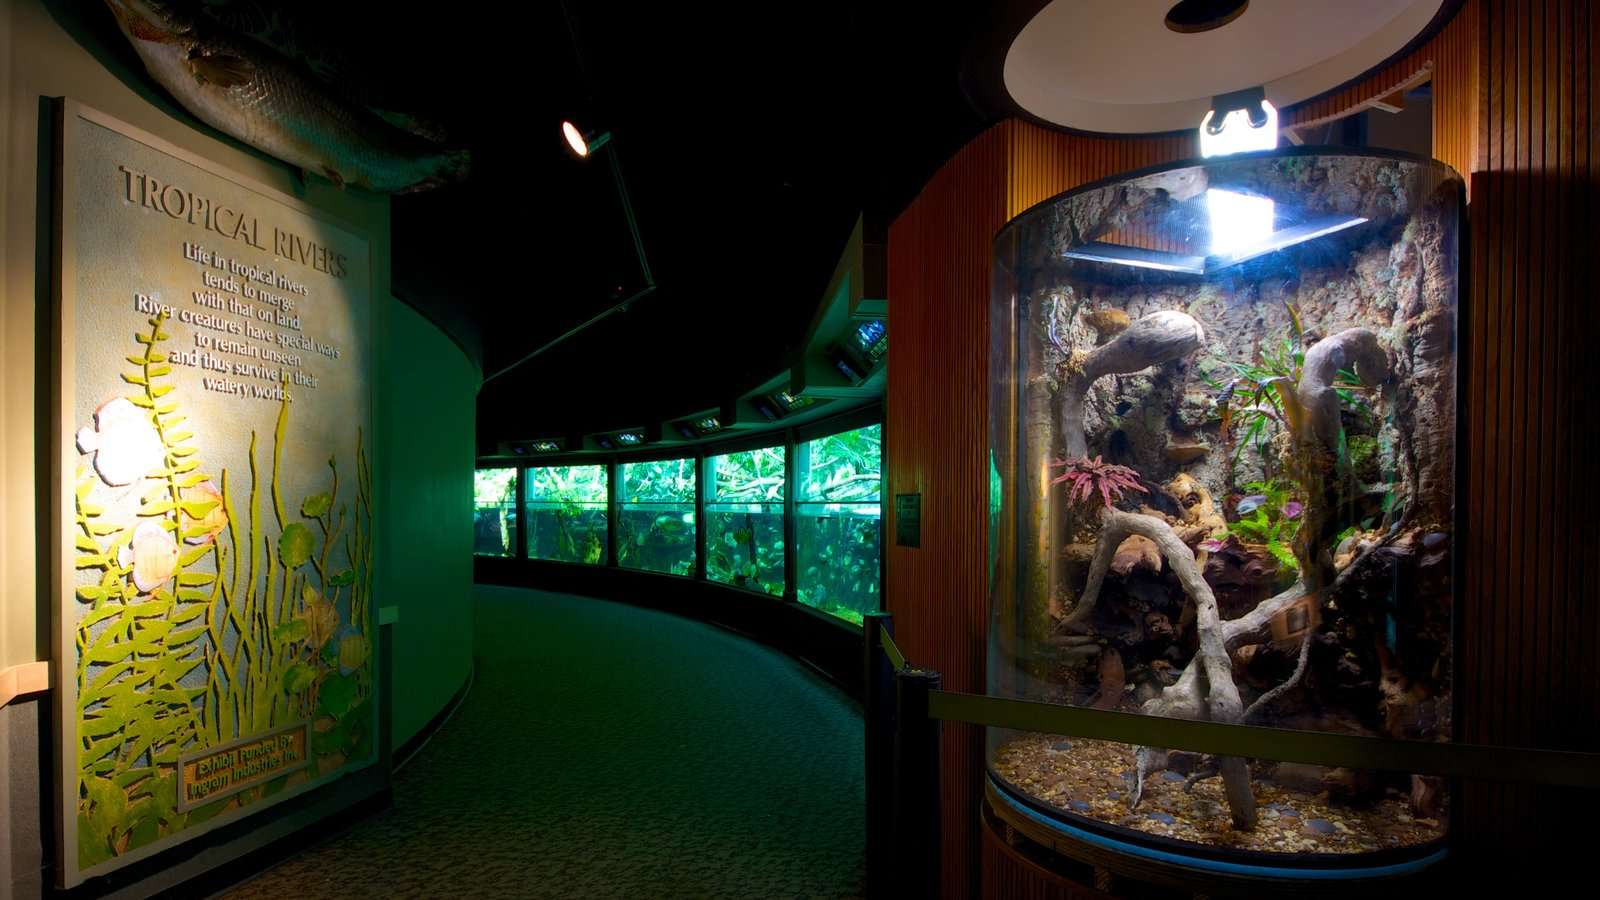 Nashville Zoo featuring zoo animals, signage and interior views